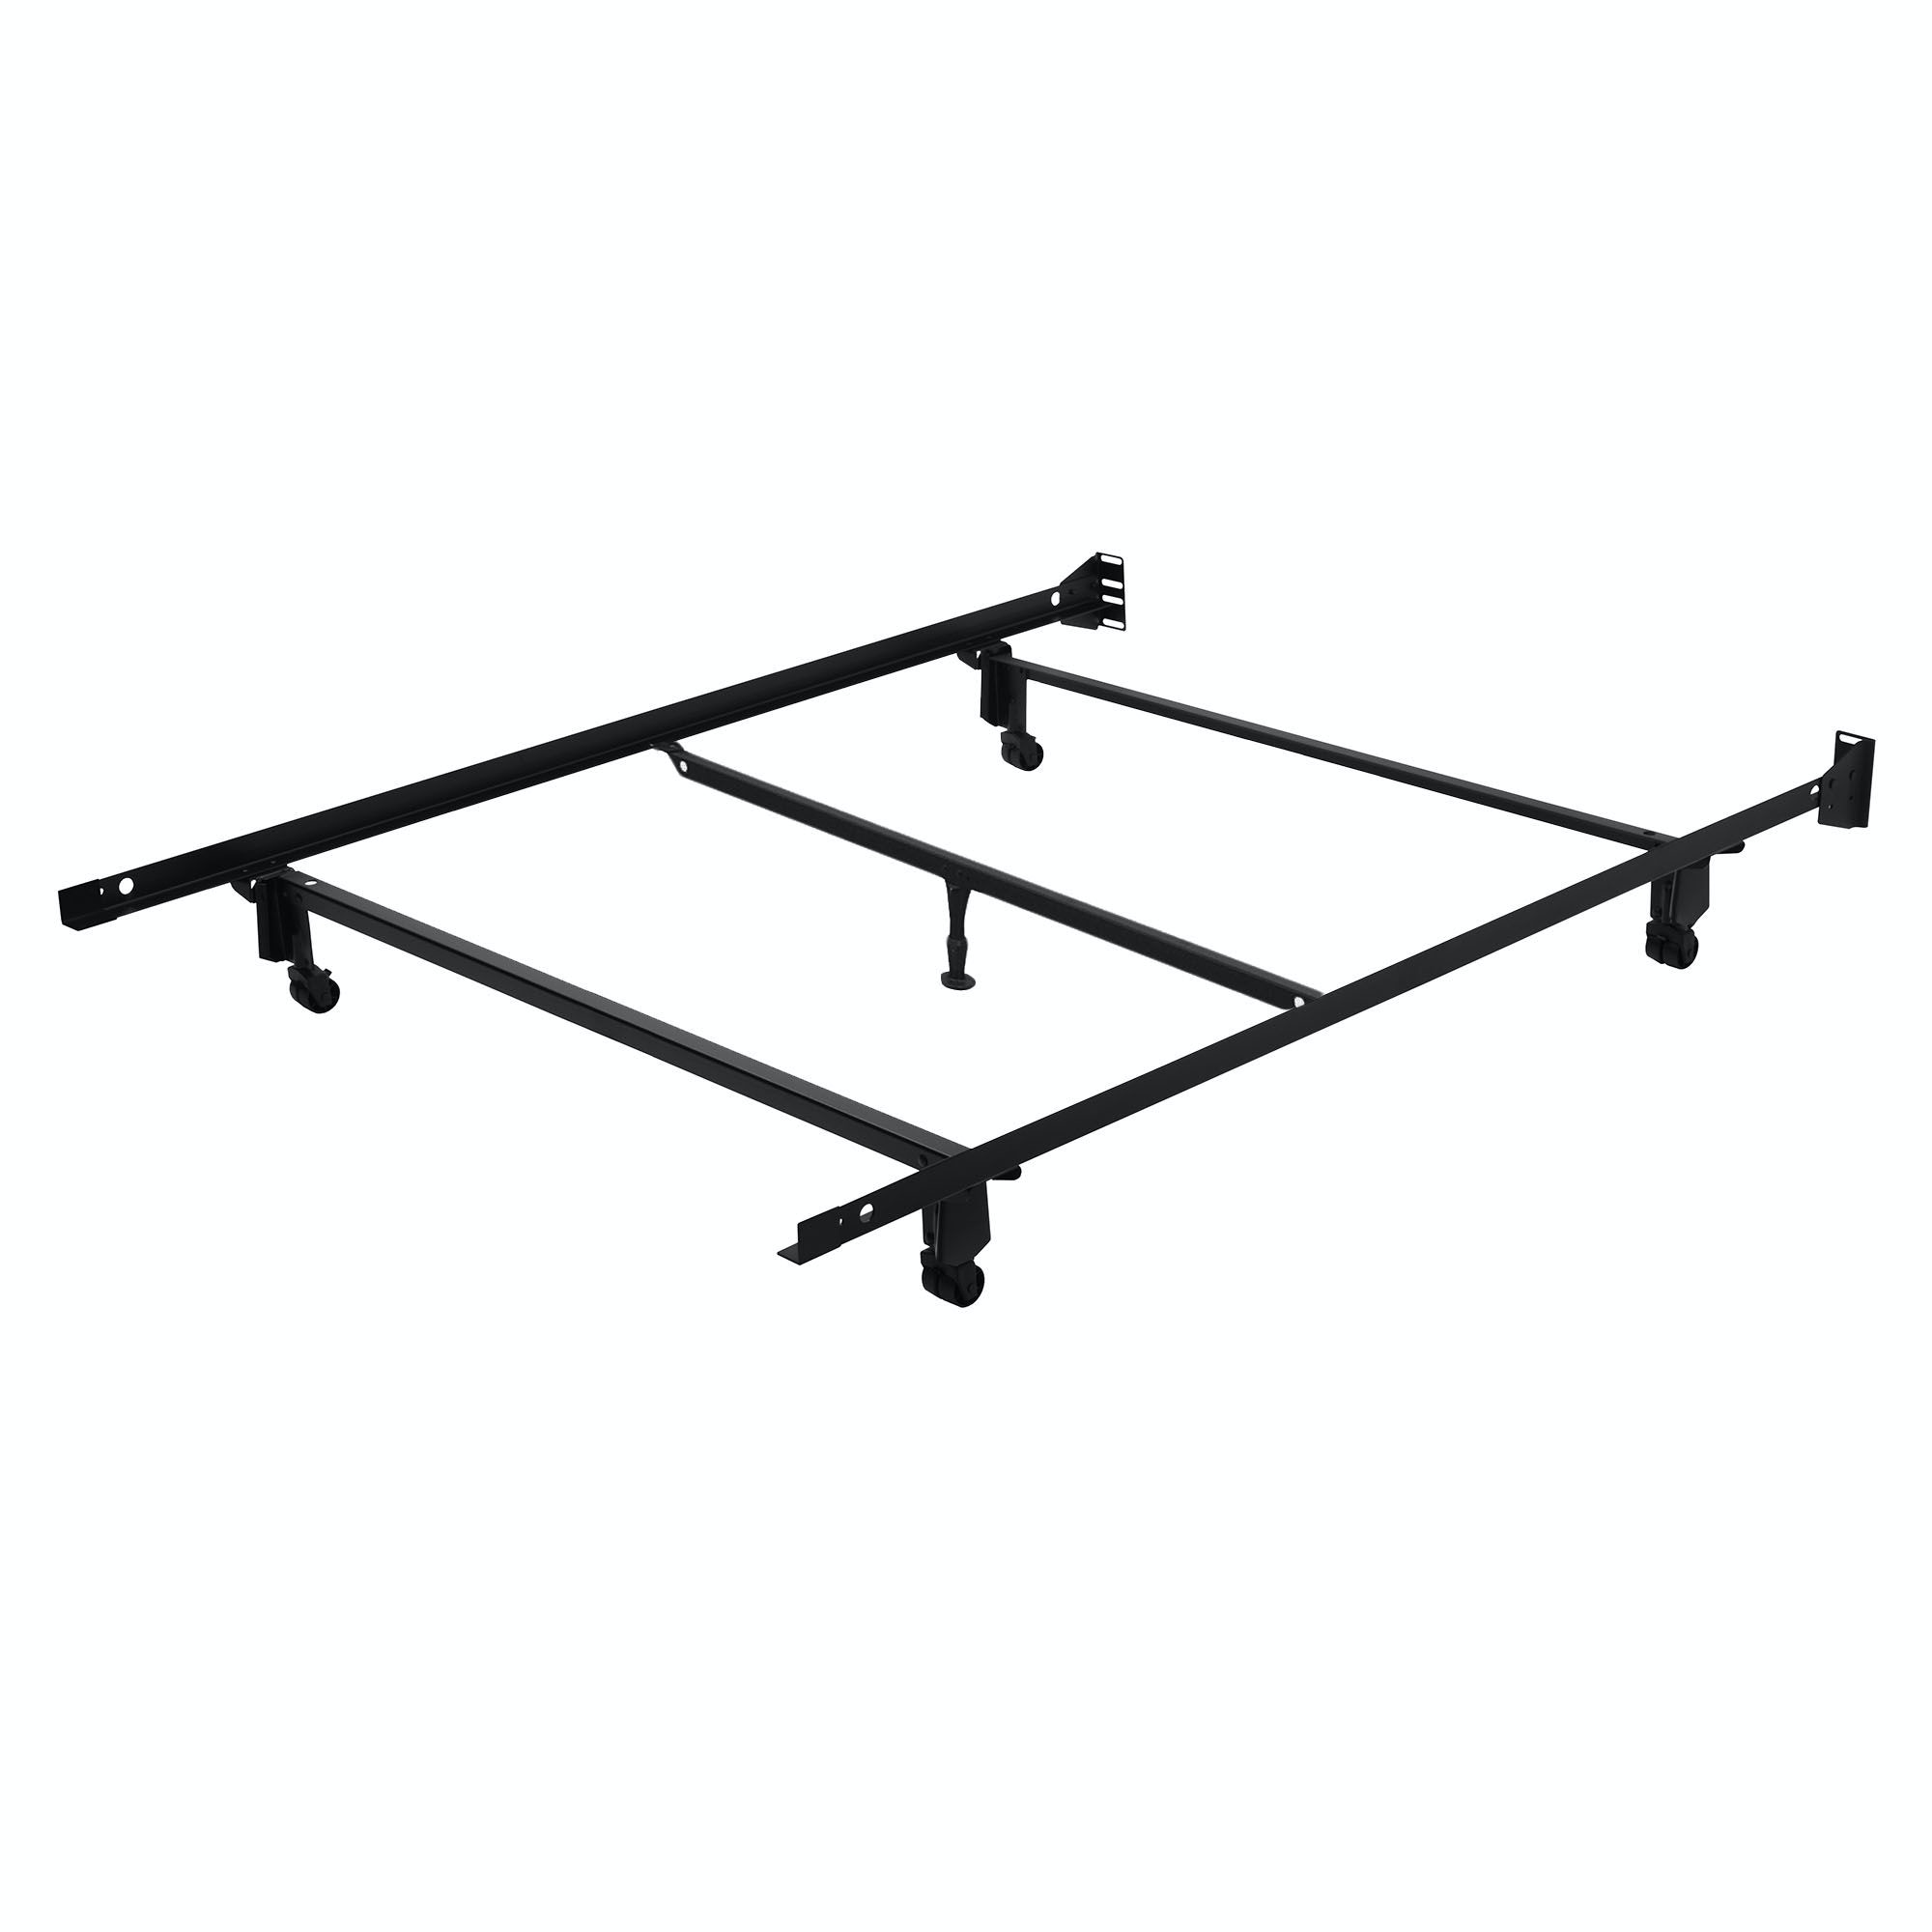 Fashion Bed Group Mattresses InstAMatic Premium 753RC4 Bed Frame